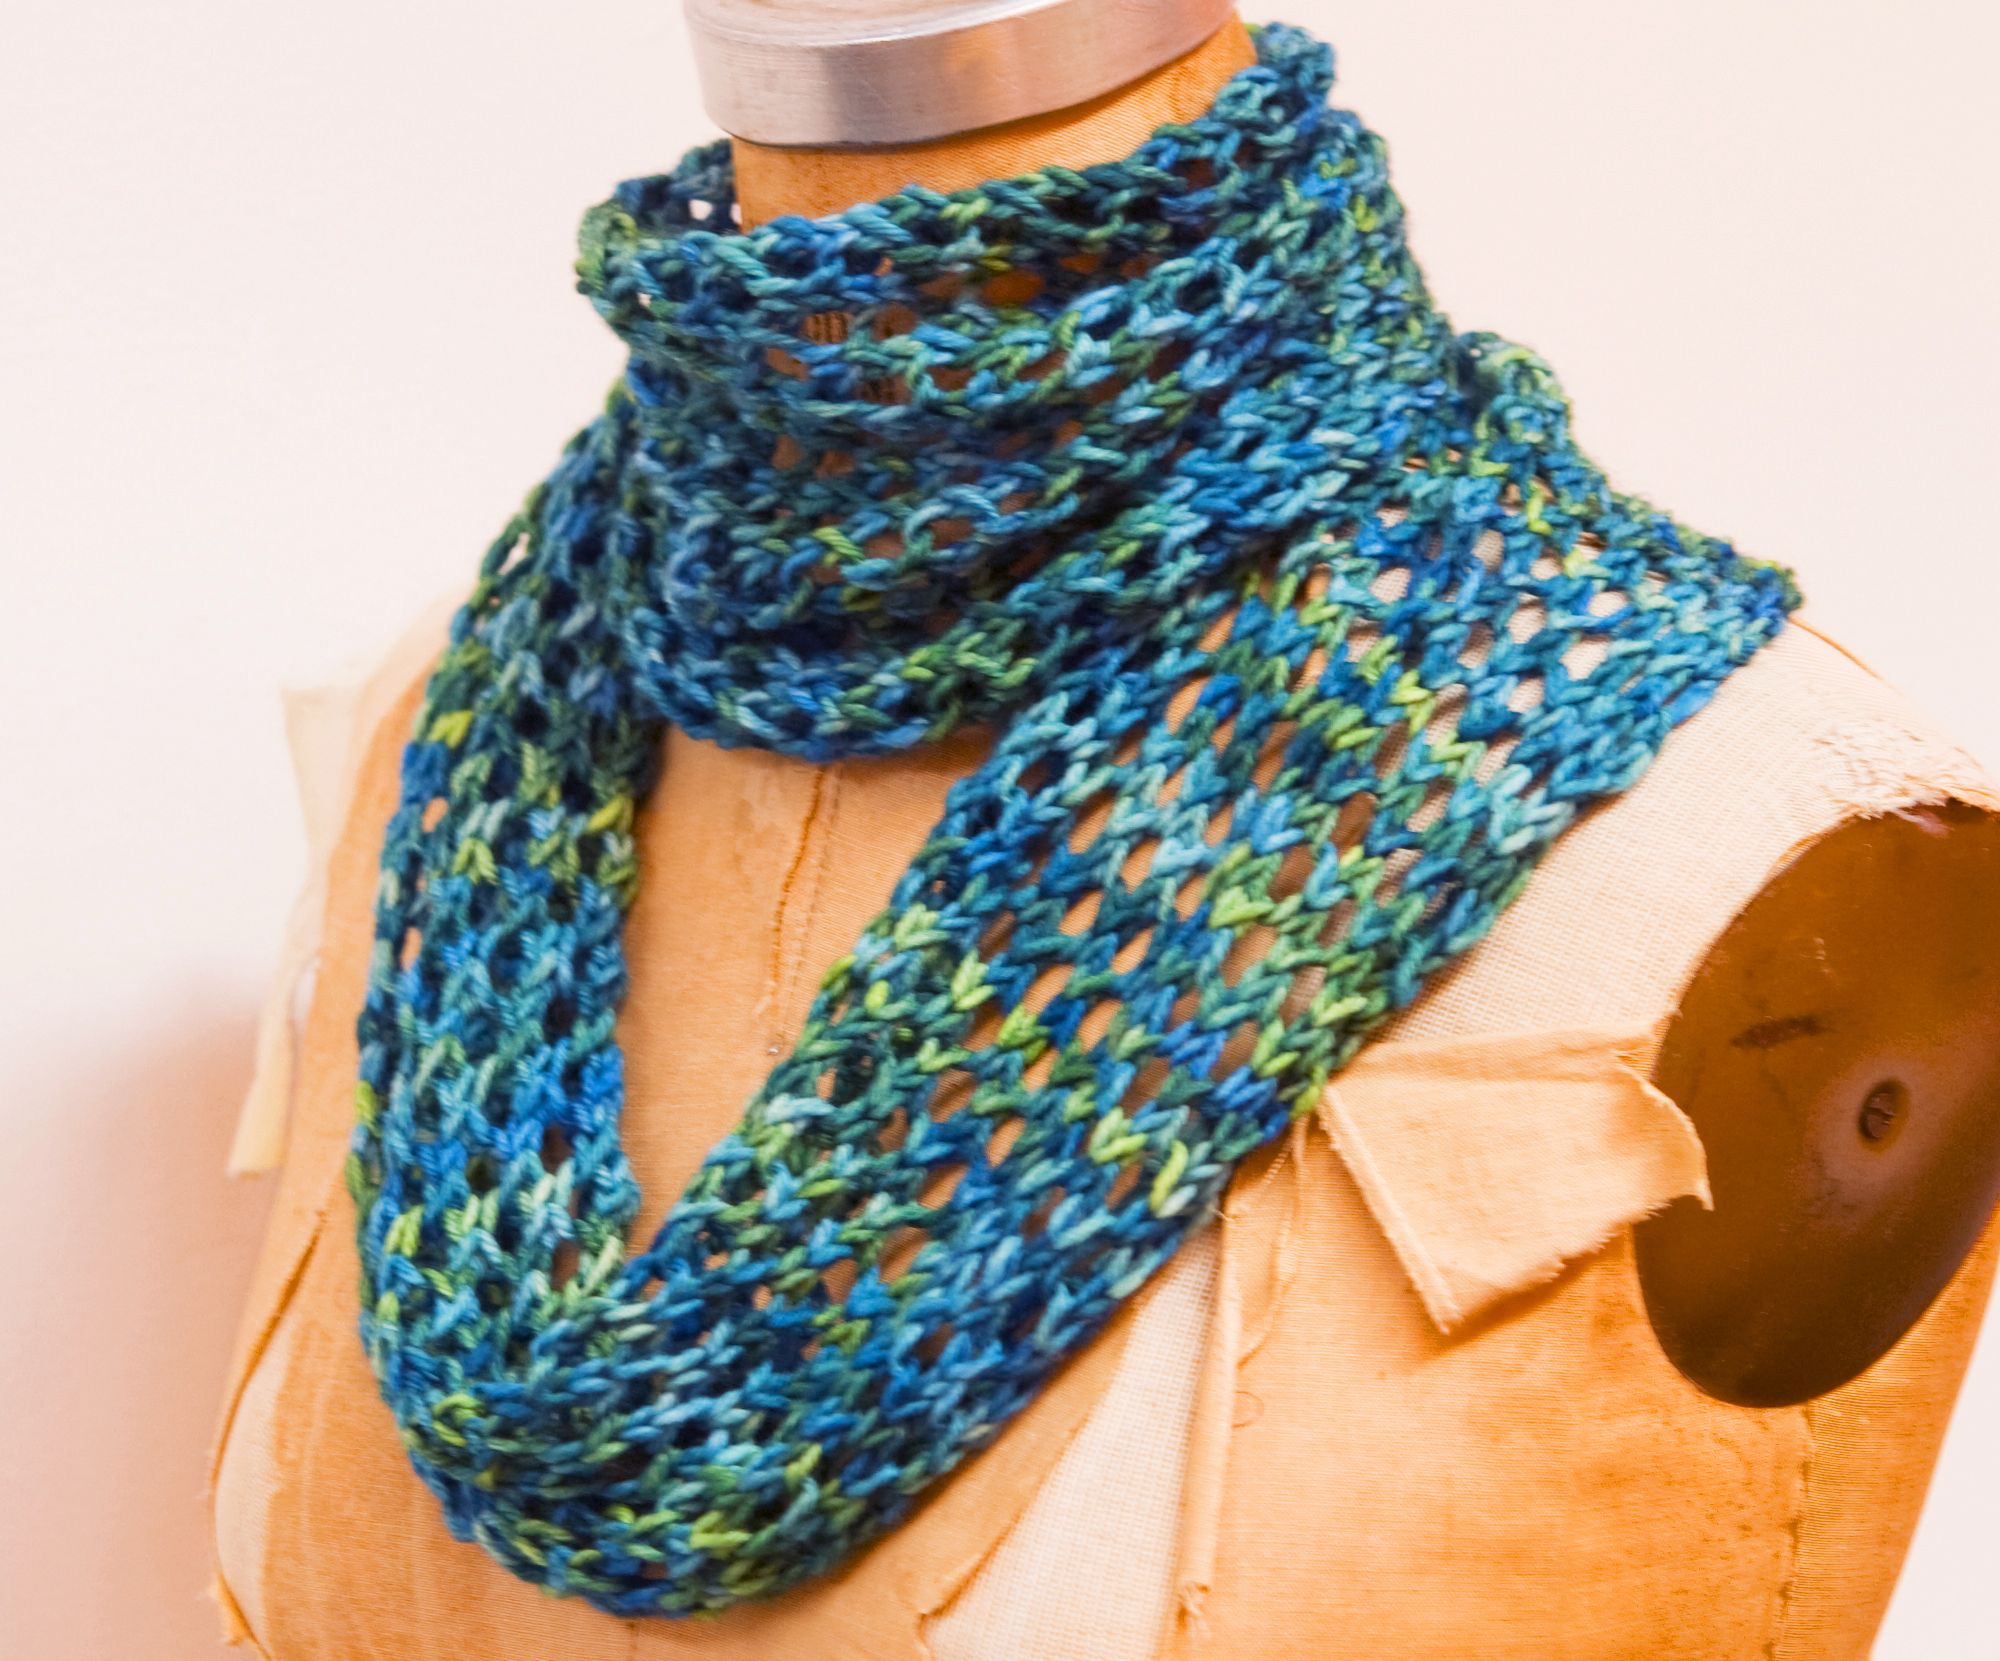 Knit Lace Stitch Scarf : Easy Trellis Lace Scarf (Knitting) Knitting and Crochet Pinterest Scarv...